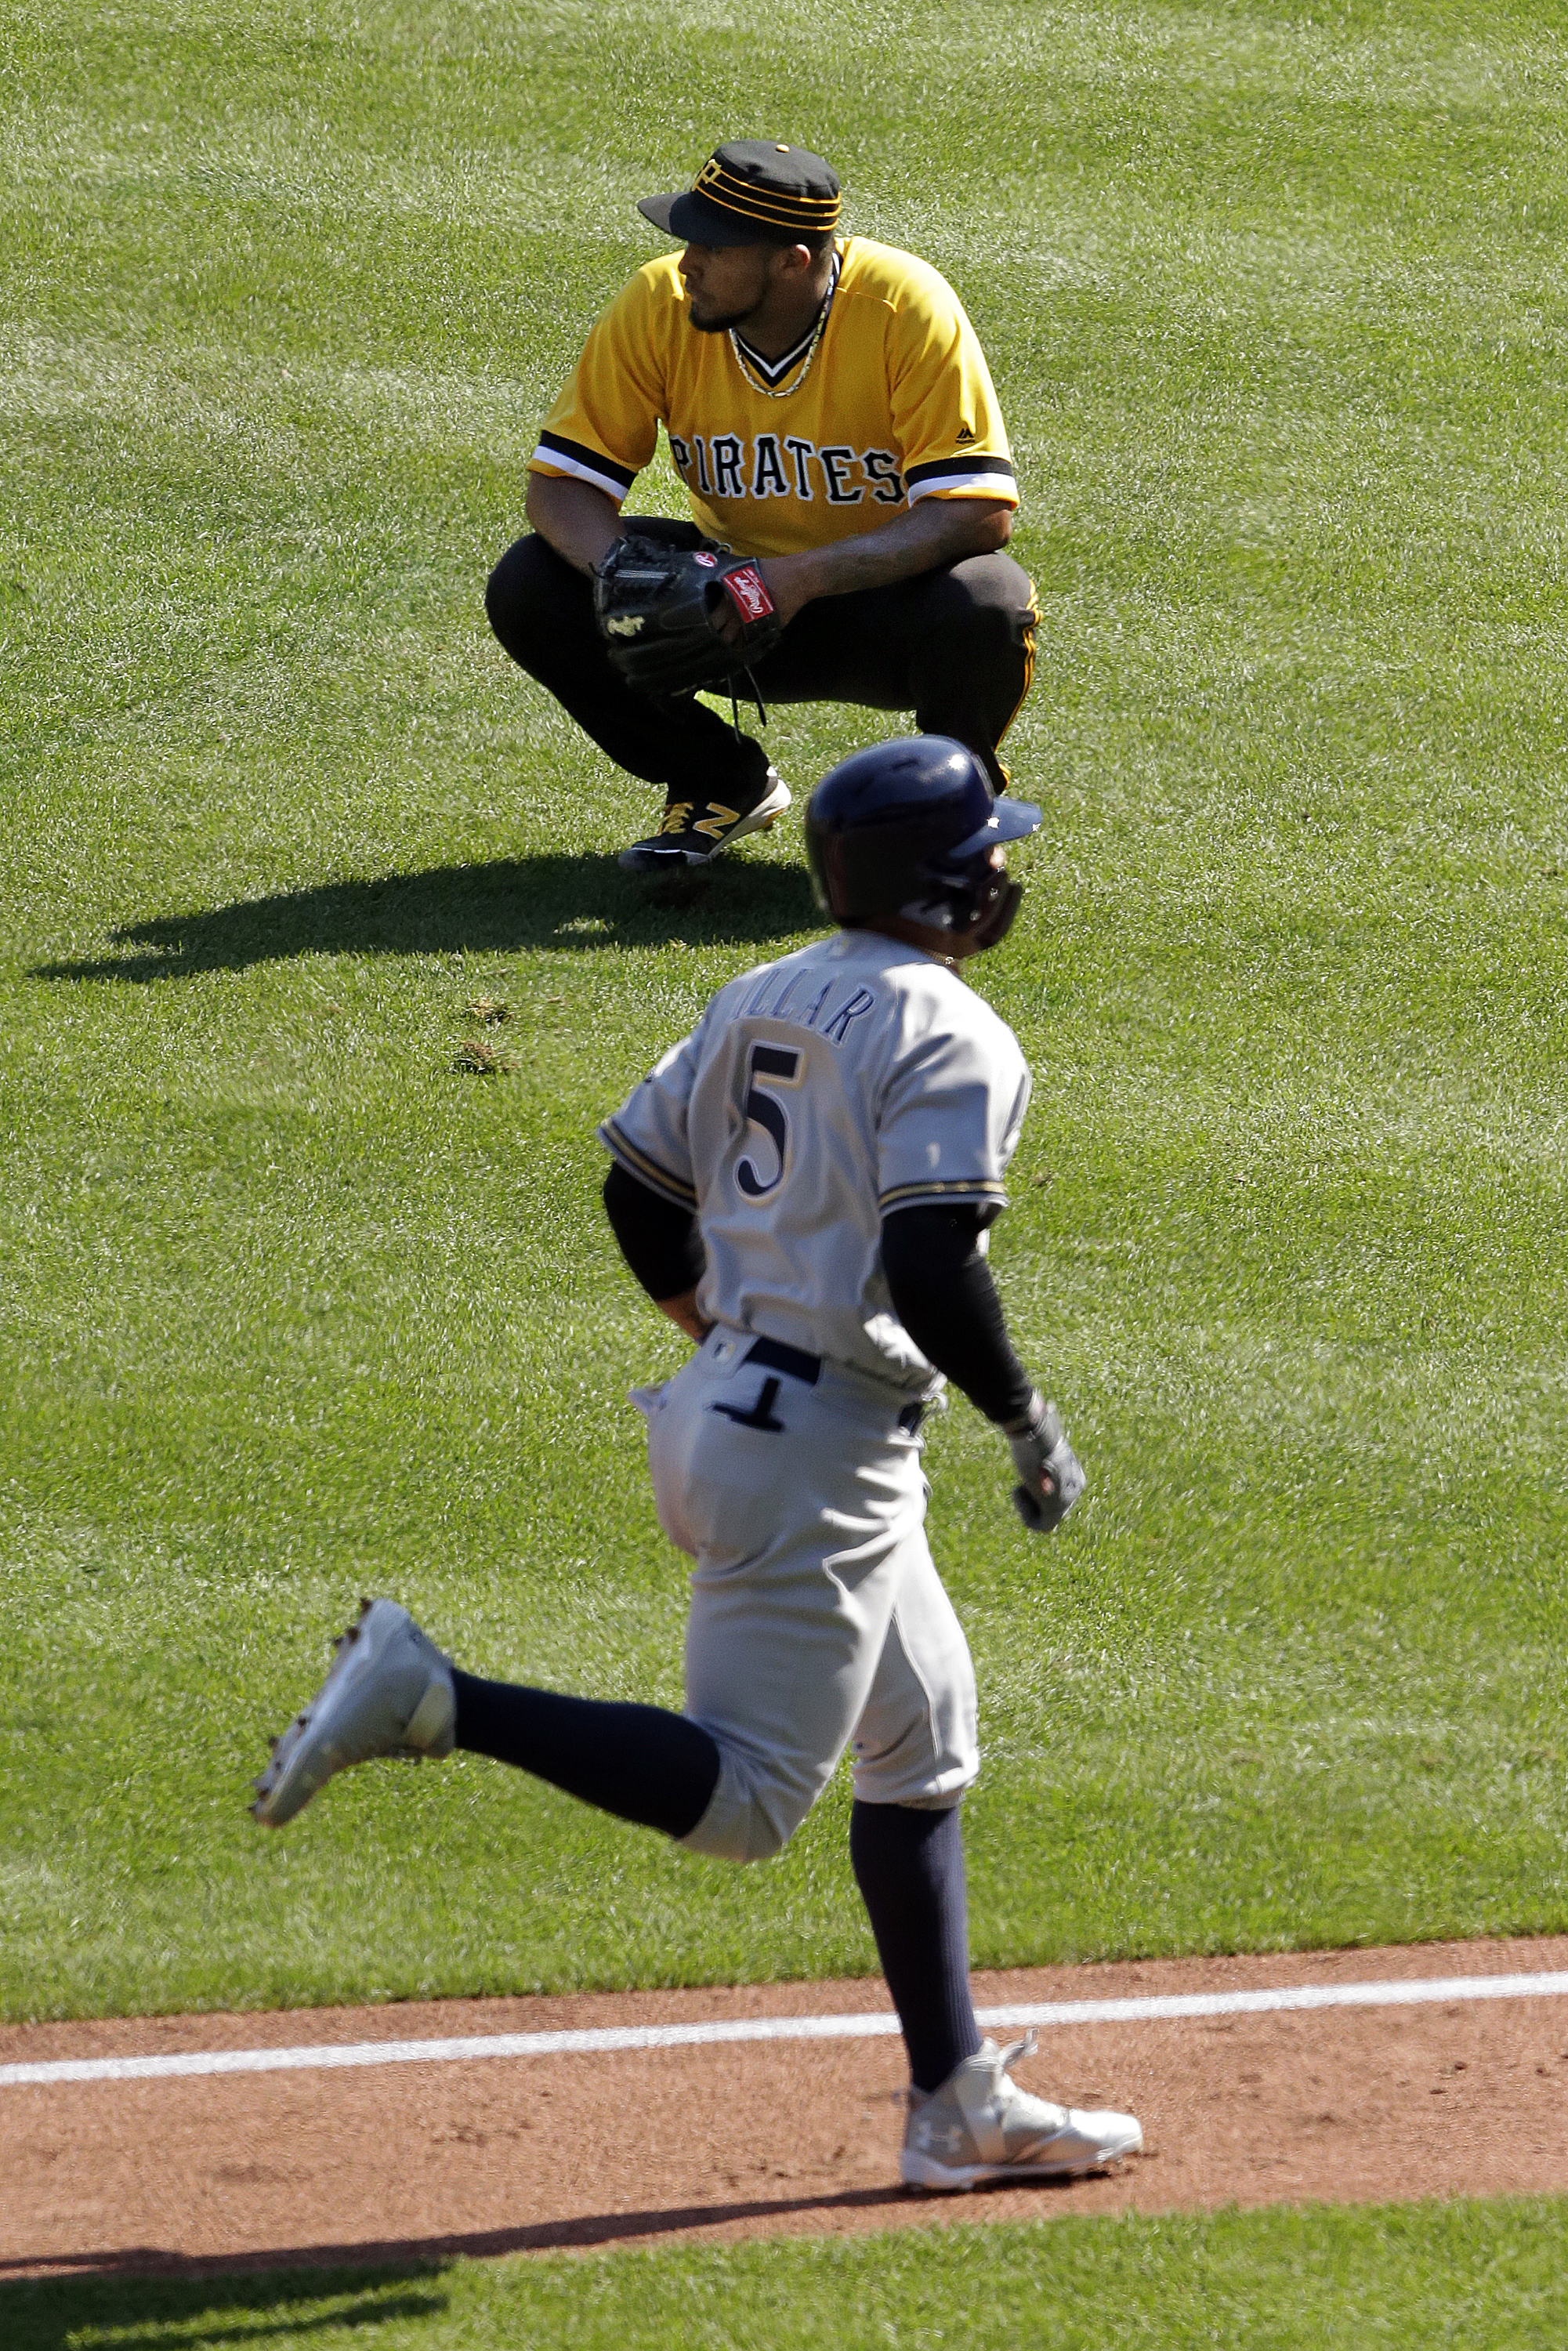 Milwaukee Brewers' Jonathan Villar (5) rounds third after hitting a grand slam off Pittsburgh Pirates relief pitcher Juan Nicasio, rear, during the sixth inning of a baseball game in Pittsburgh, Sunday, Sept. 4, 2016. (AP Photo/Gene J. Puskar)